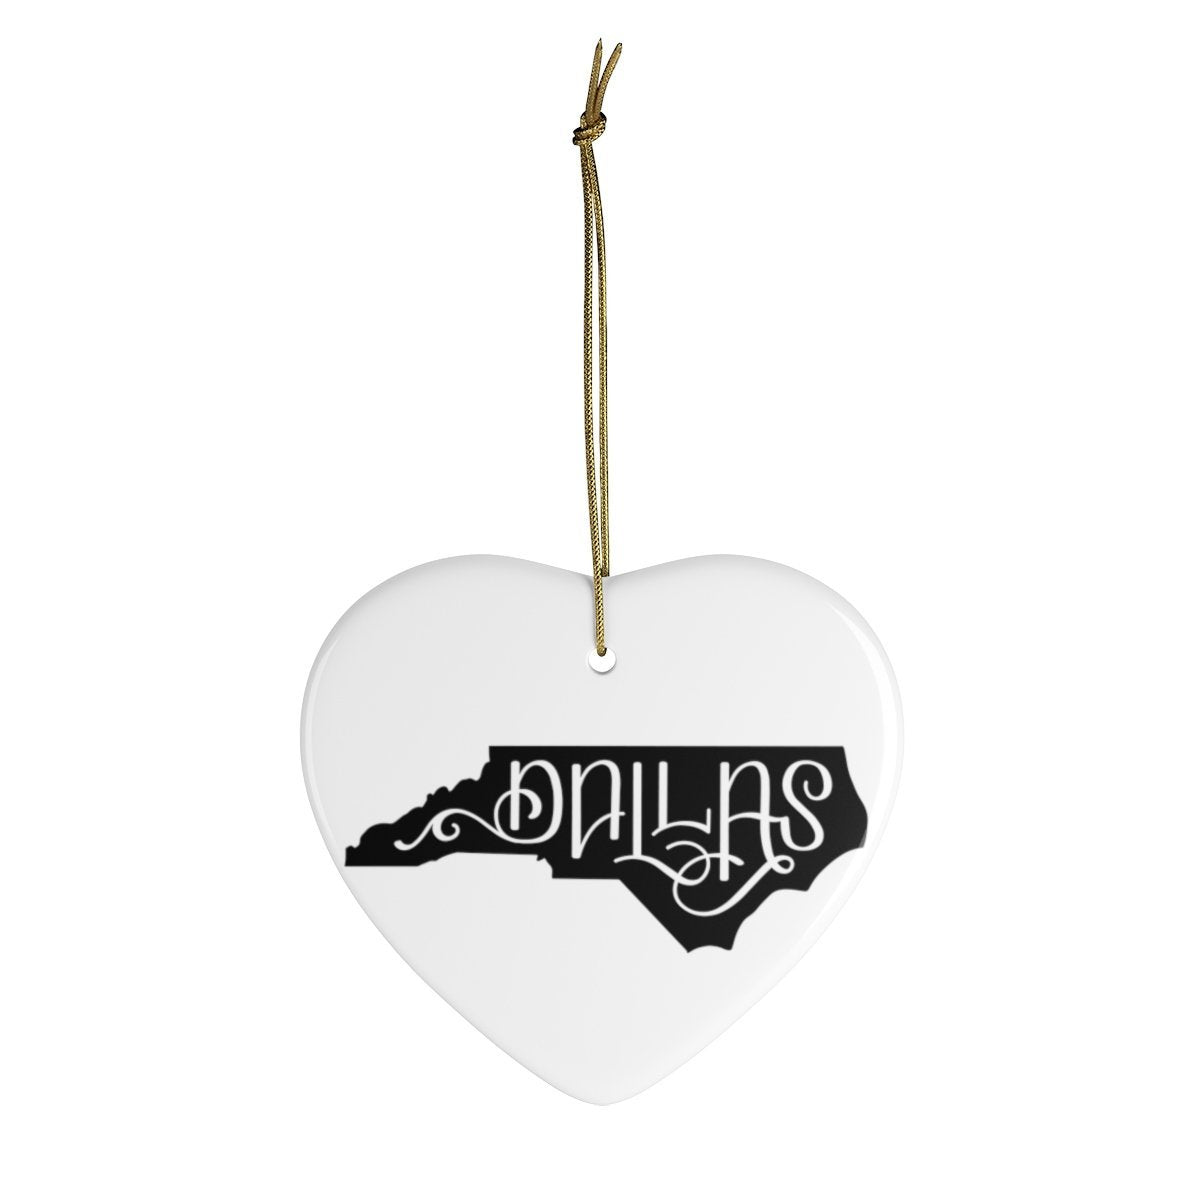 Leanne & Co. Home Decor Heart / One Size Dallas, NC Ceramic Ornament